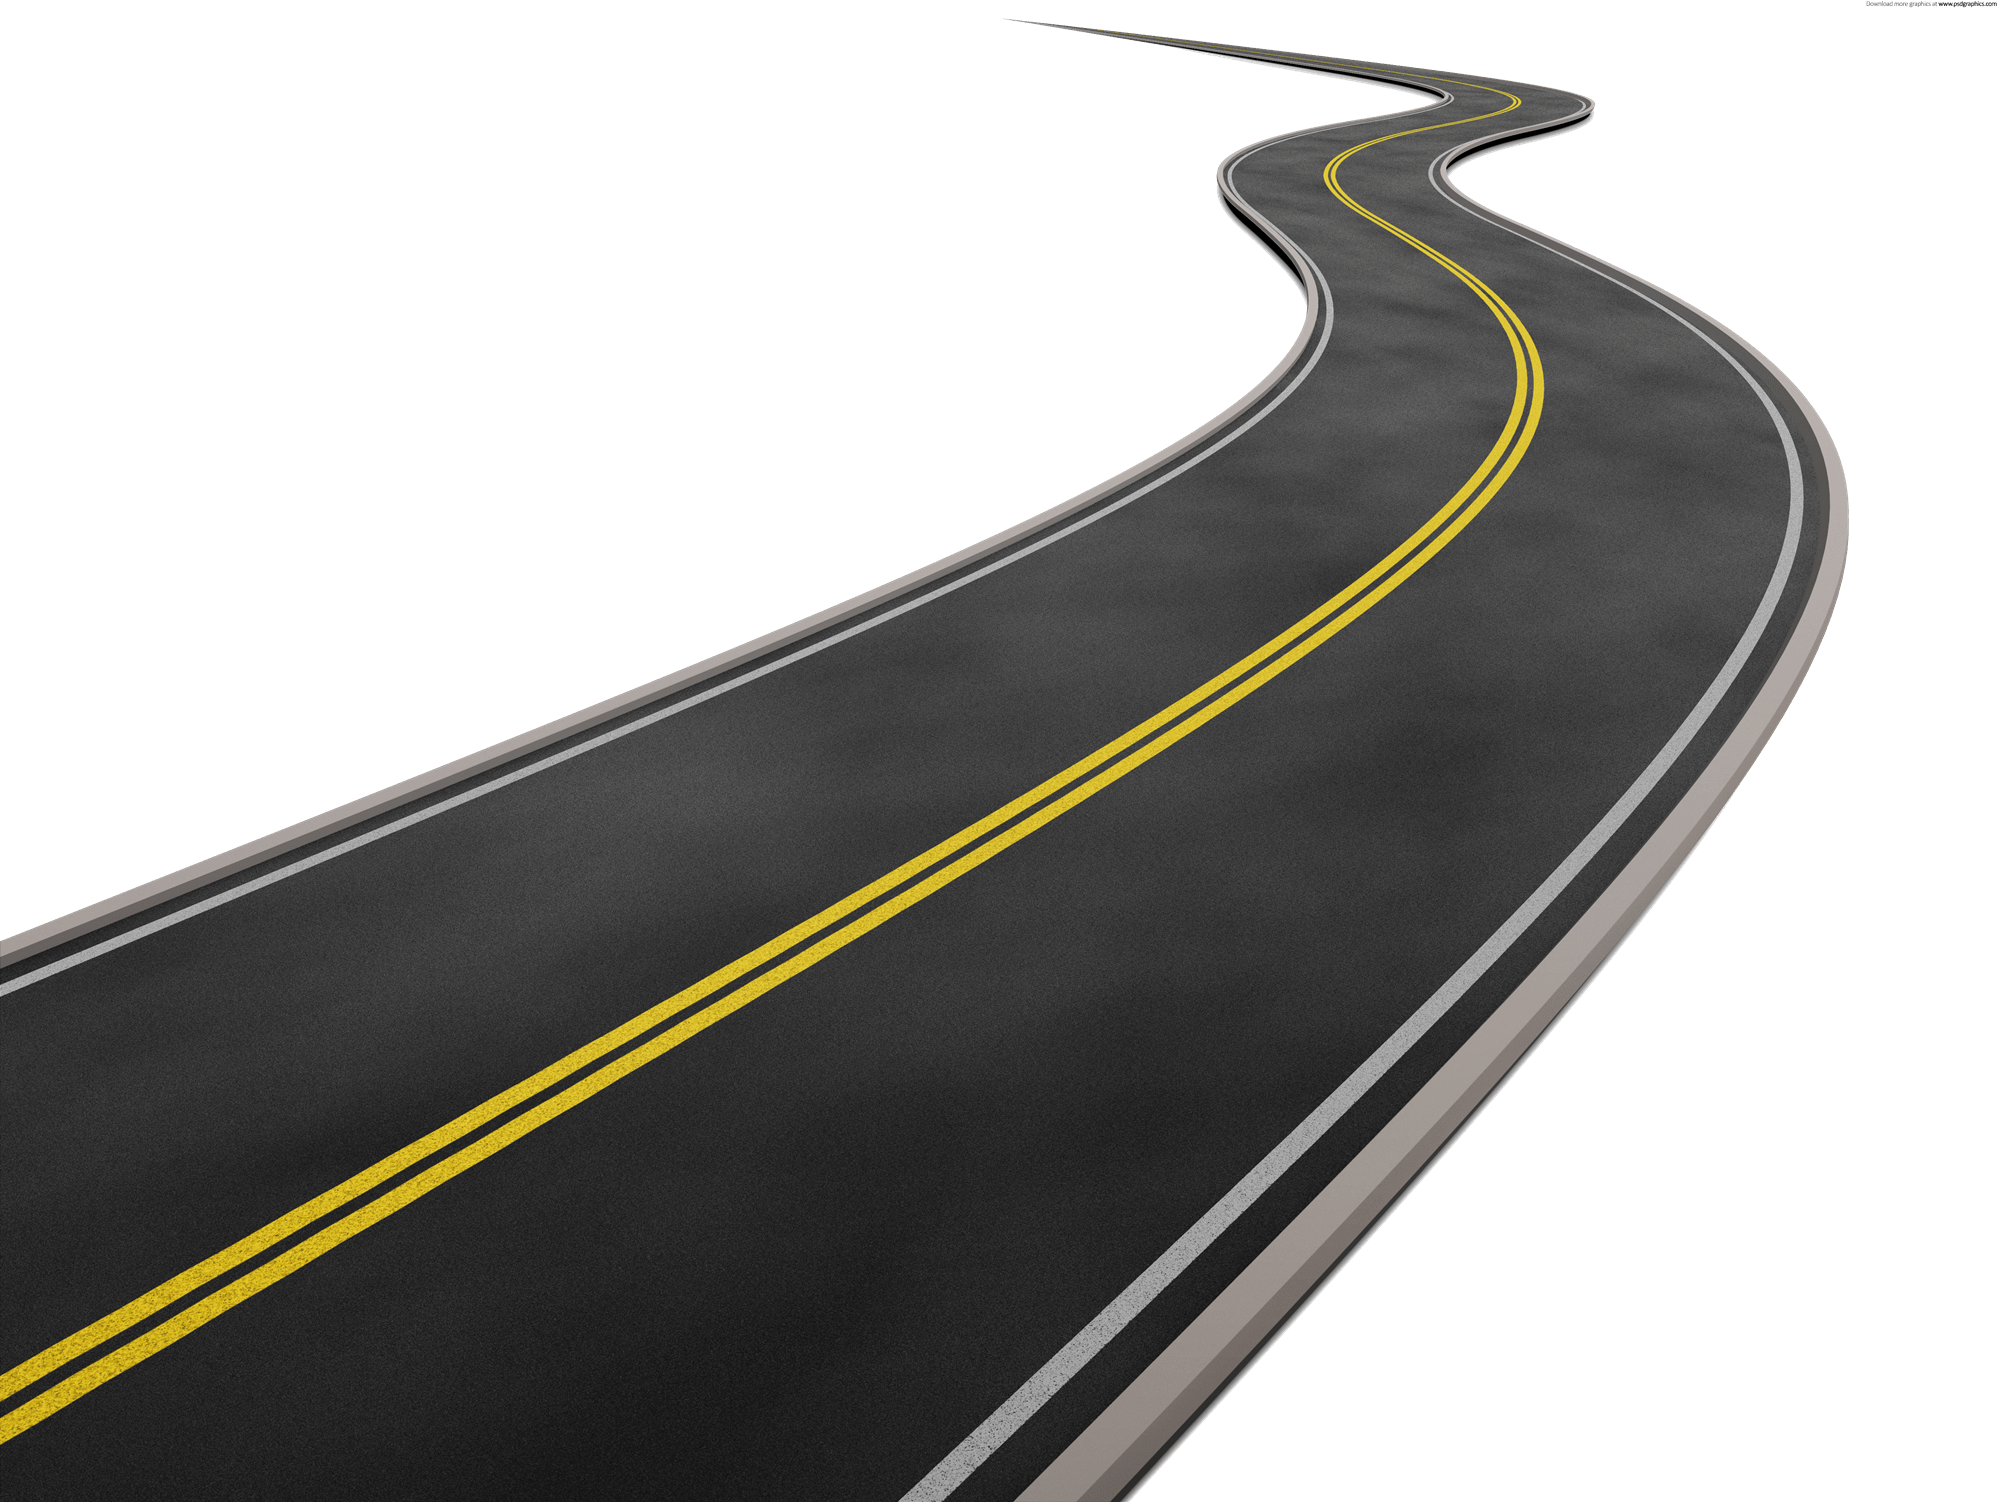 Aundh iti road download free clipart with a transparent.